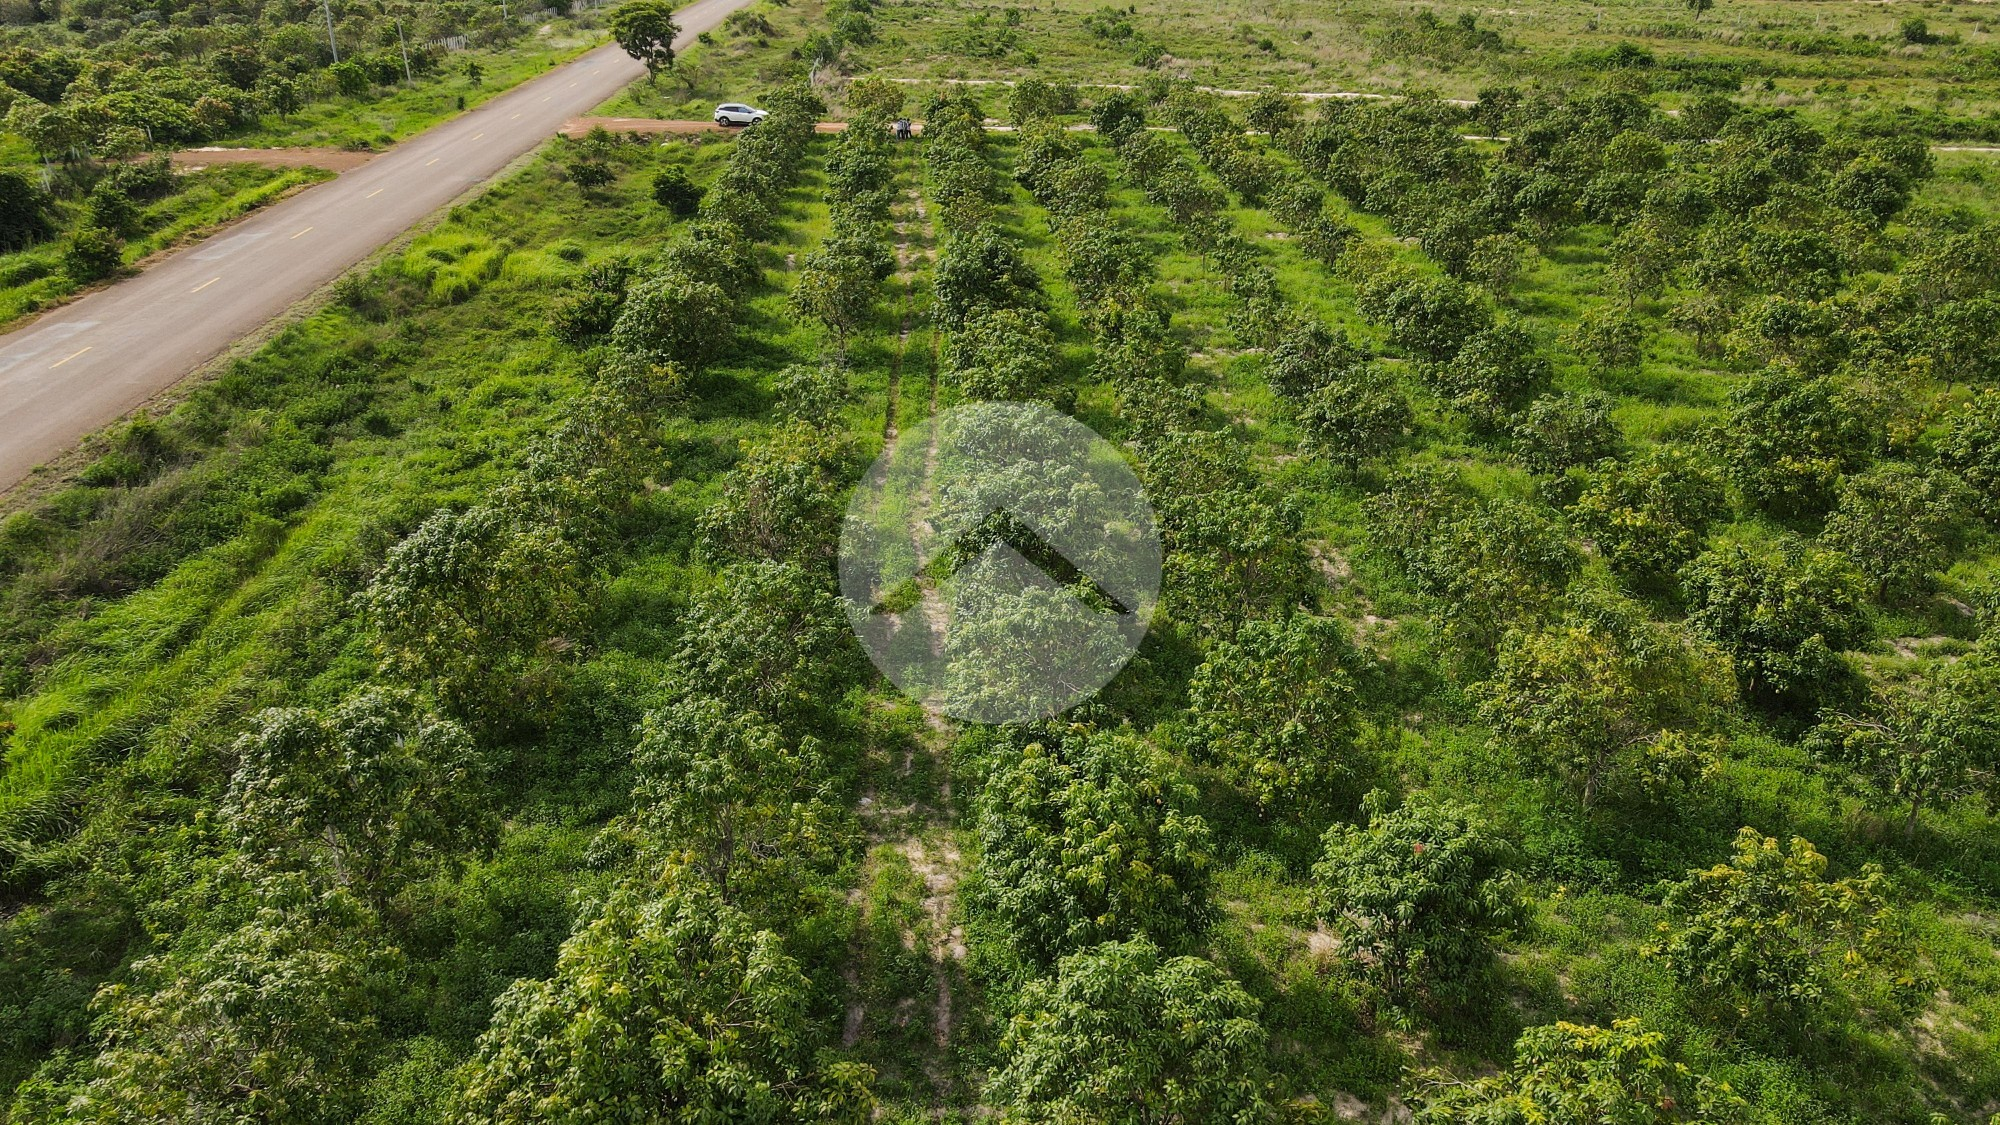 28 Hectare Land For Sale - Banteay Srei, Siem Reap